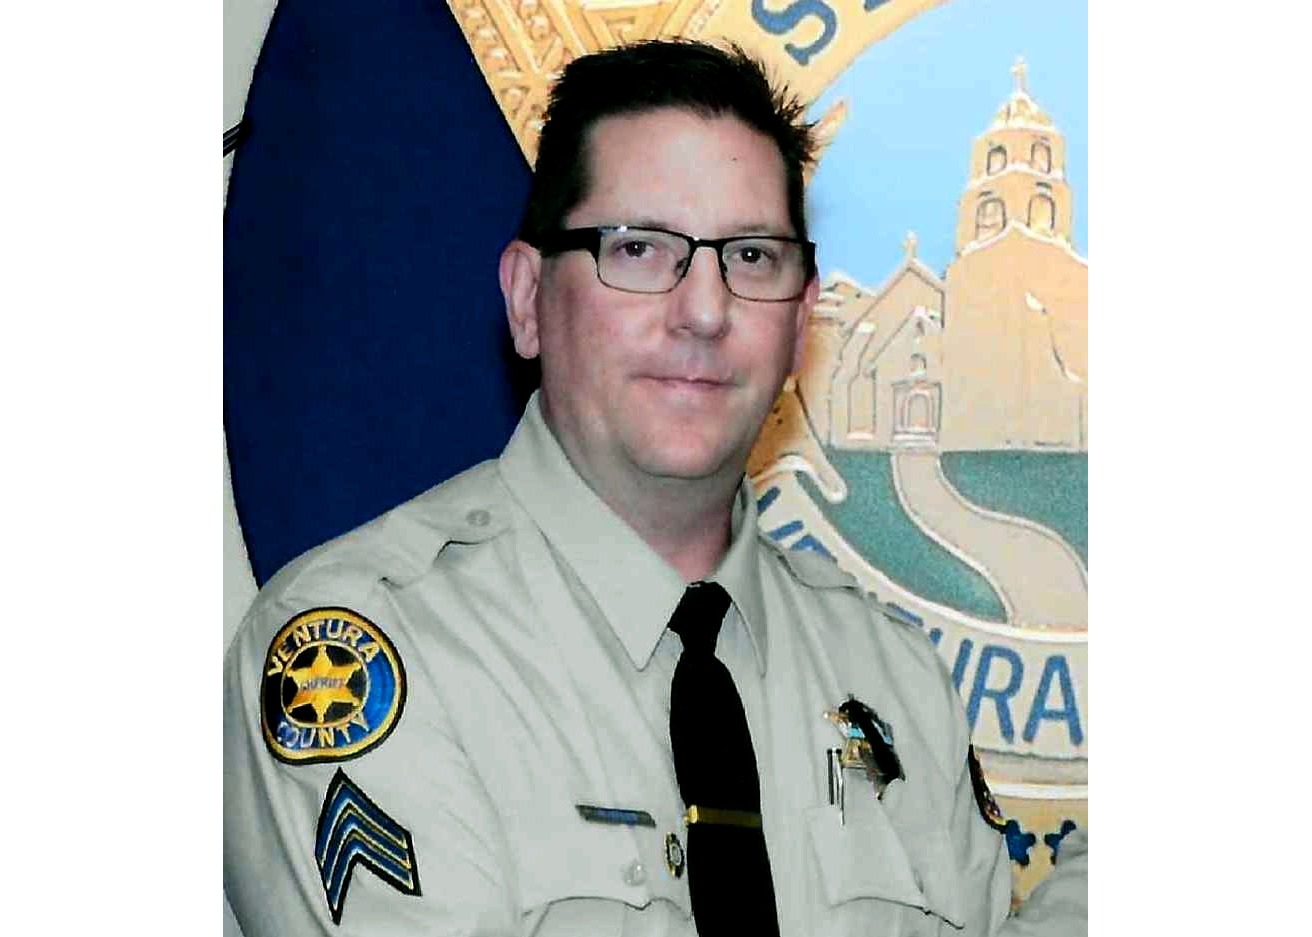 This undated photo provided by the Ventura County Sheriff's Department shows Sheriff's Sgt. Ron Helus, who was killed Wednesday, Nov. 7, 2018, in a deadly shooting at a country music bar in Thousand Oaks, Calif. (Ventura County Sheriff's Department via AP)